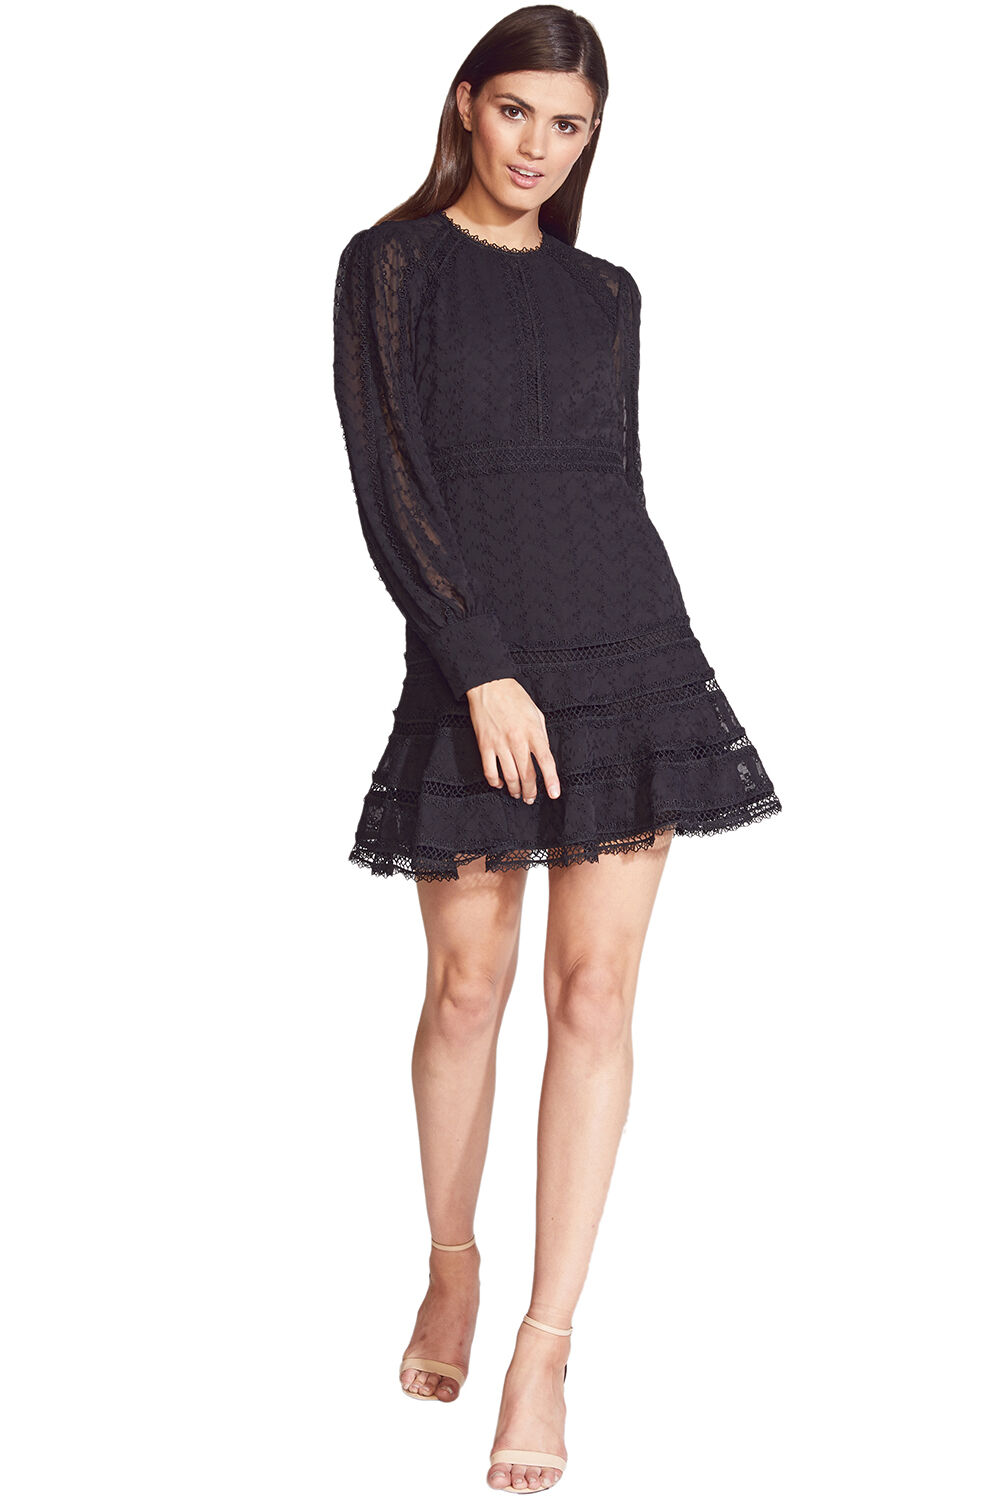 PRINNIE MINI DRESS in colour CAVIAR